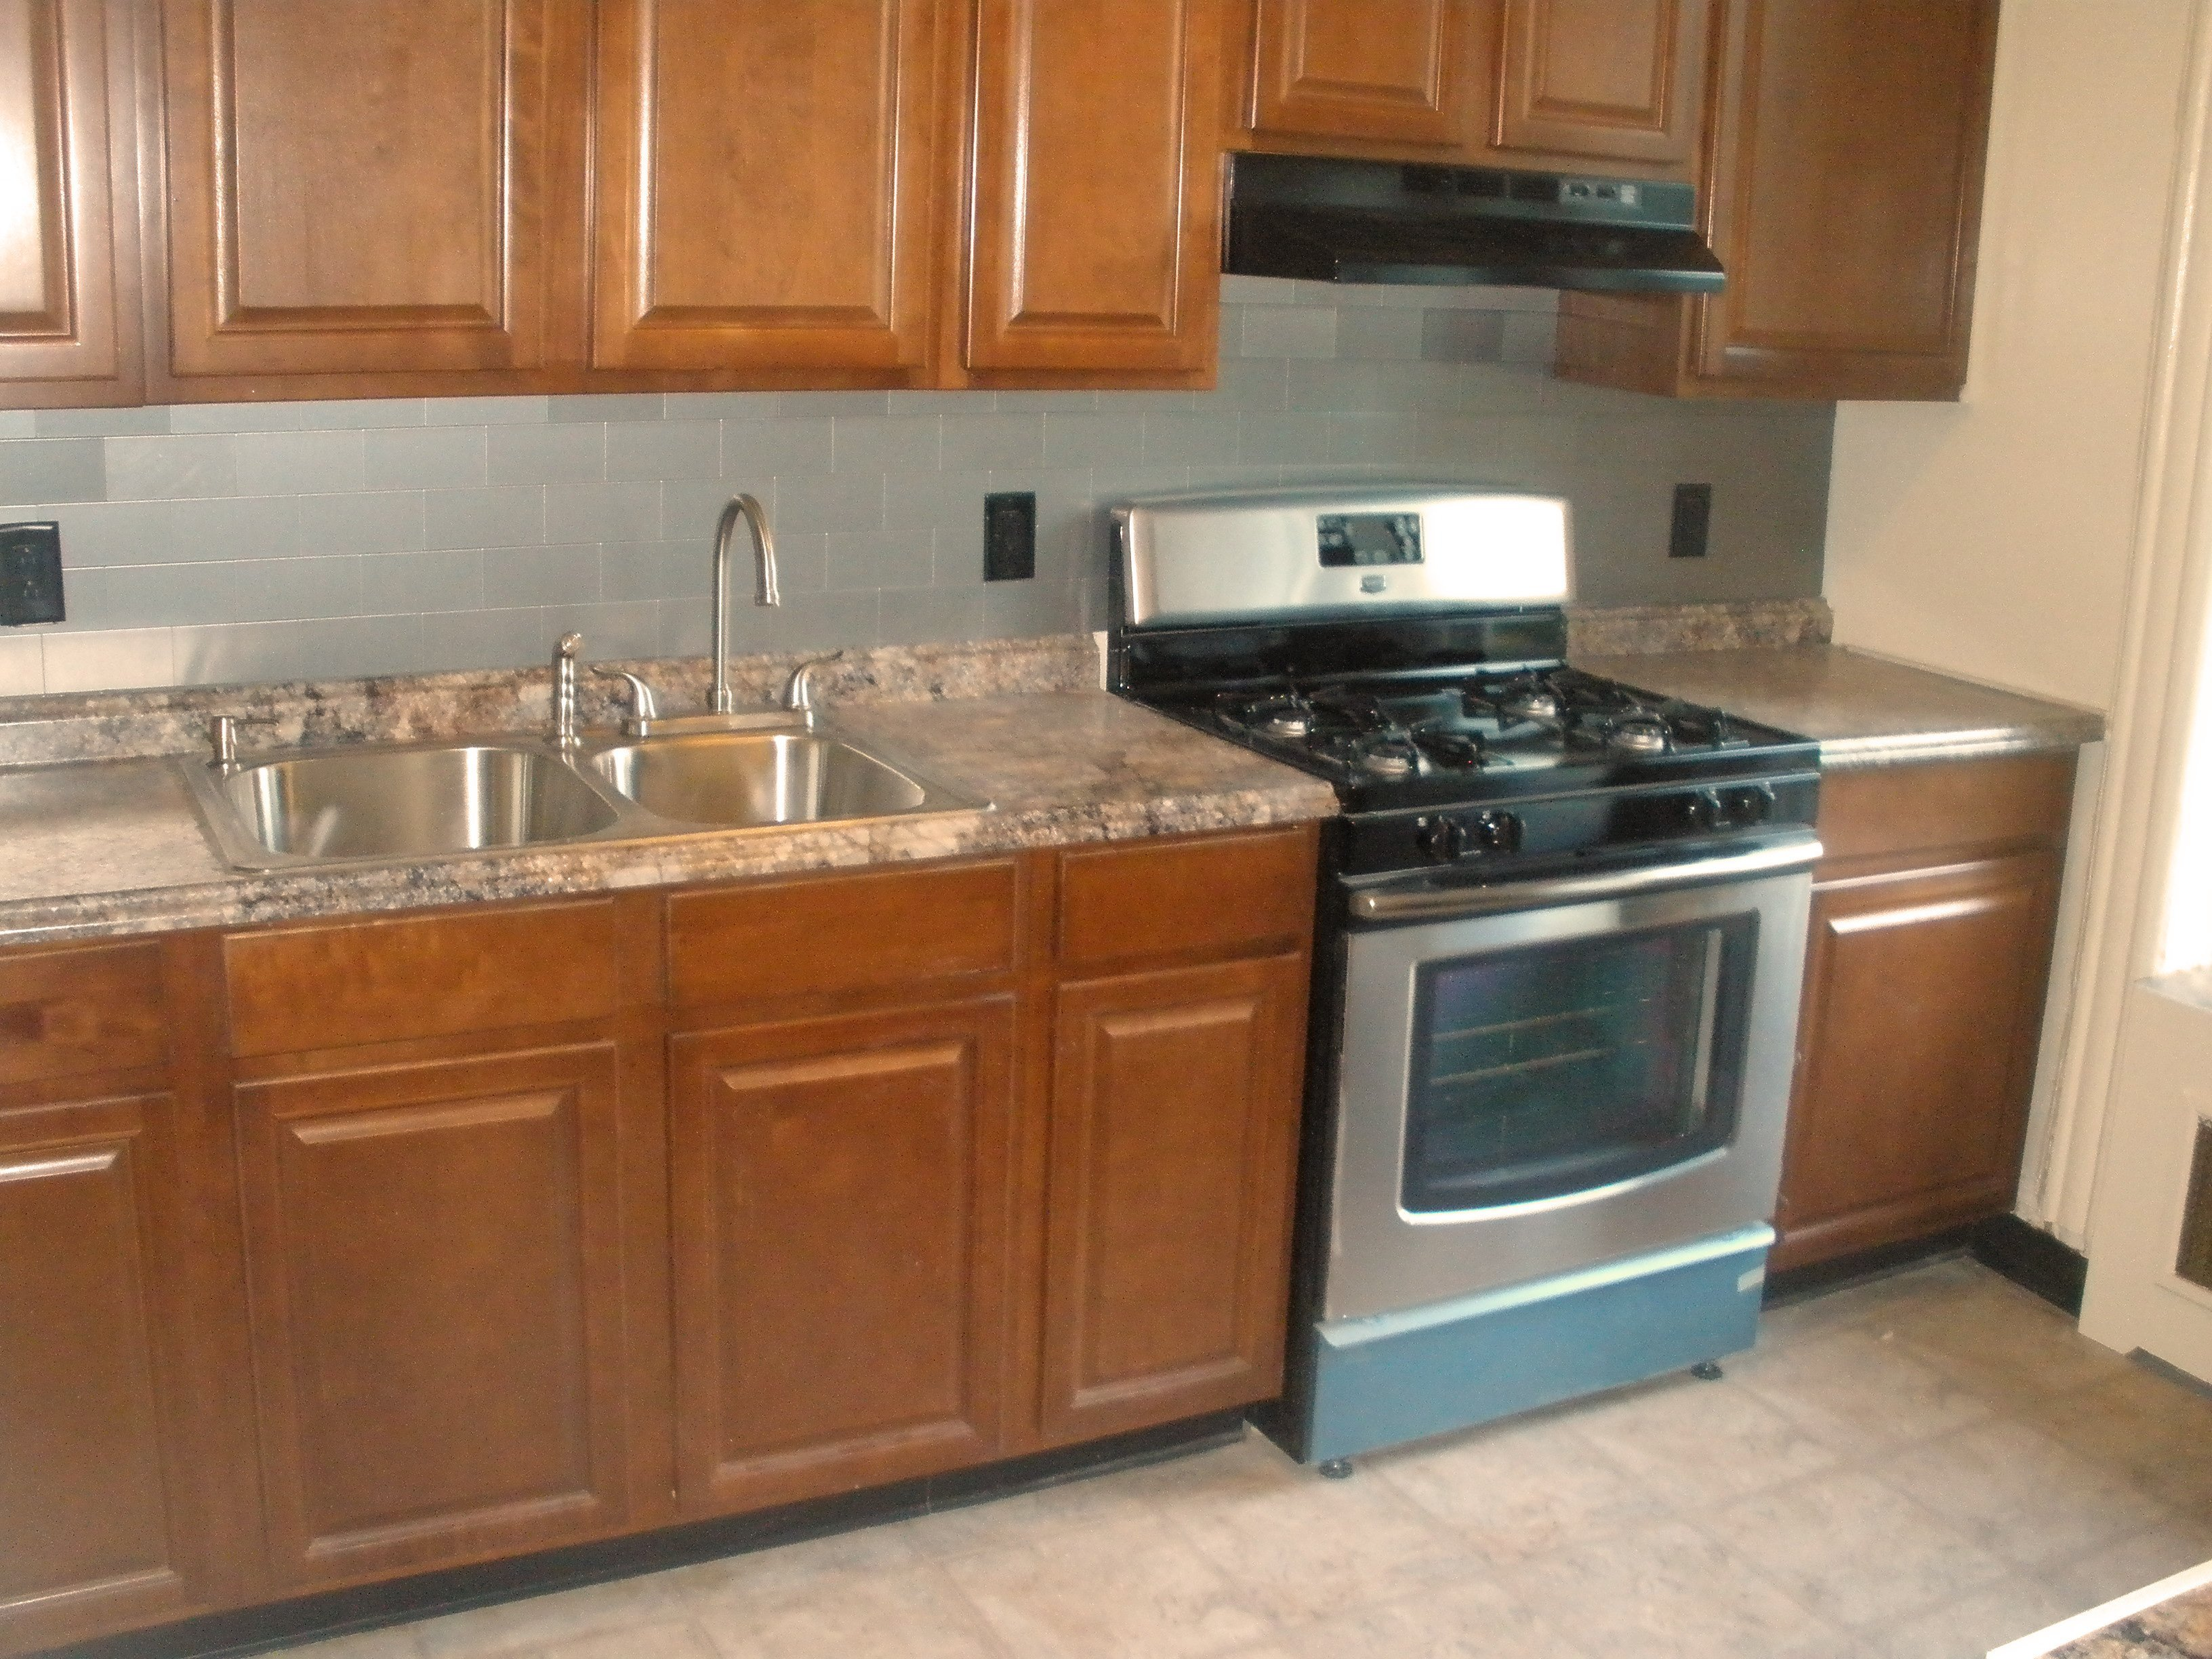 Best Bed Stuy 2 Bedroom Apartment For Rent Brooklyn Crg3117 With Pictures